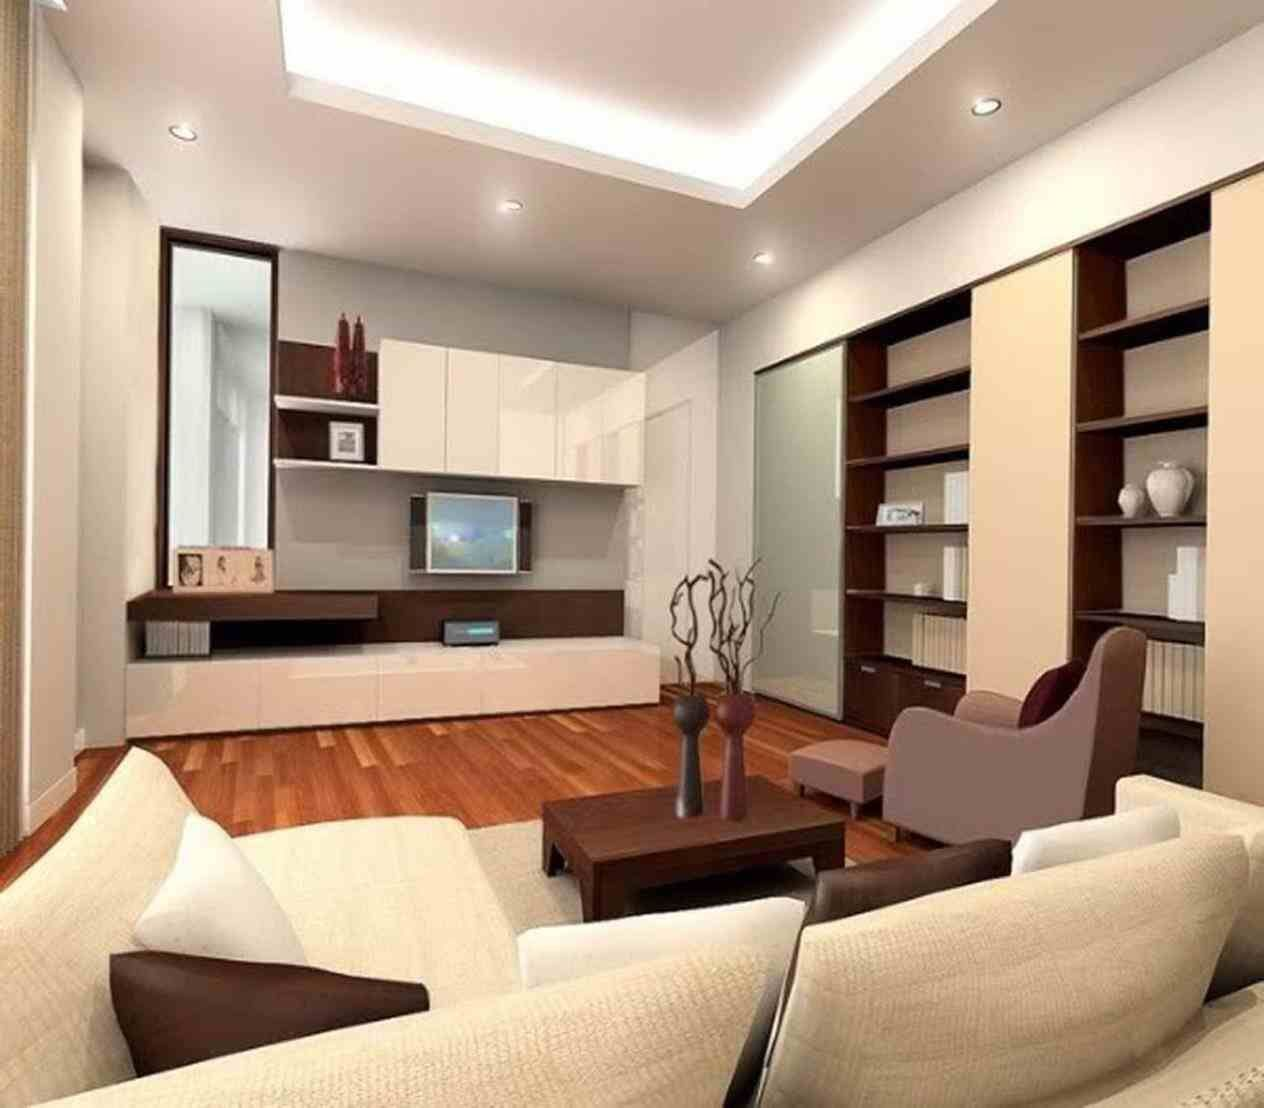 Einzel-schlafzimmer-wohndesign new post modern small living room ideas apartment visit bobayule